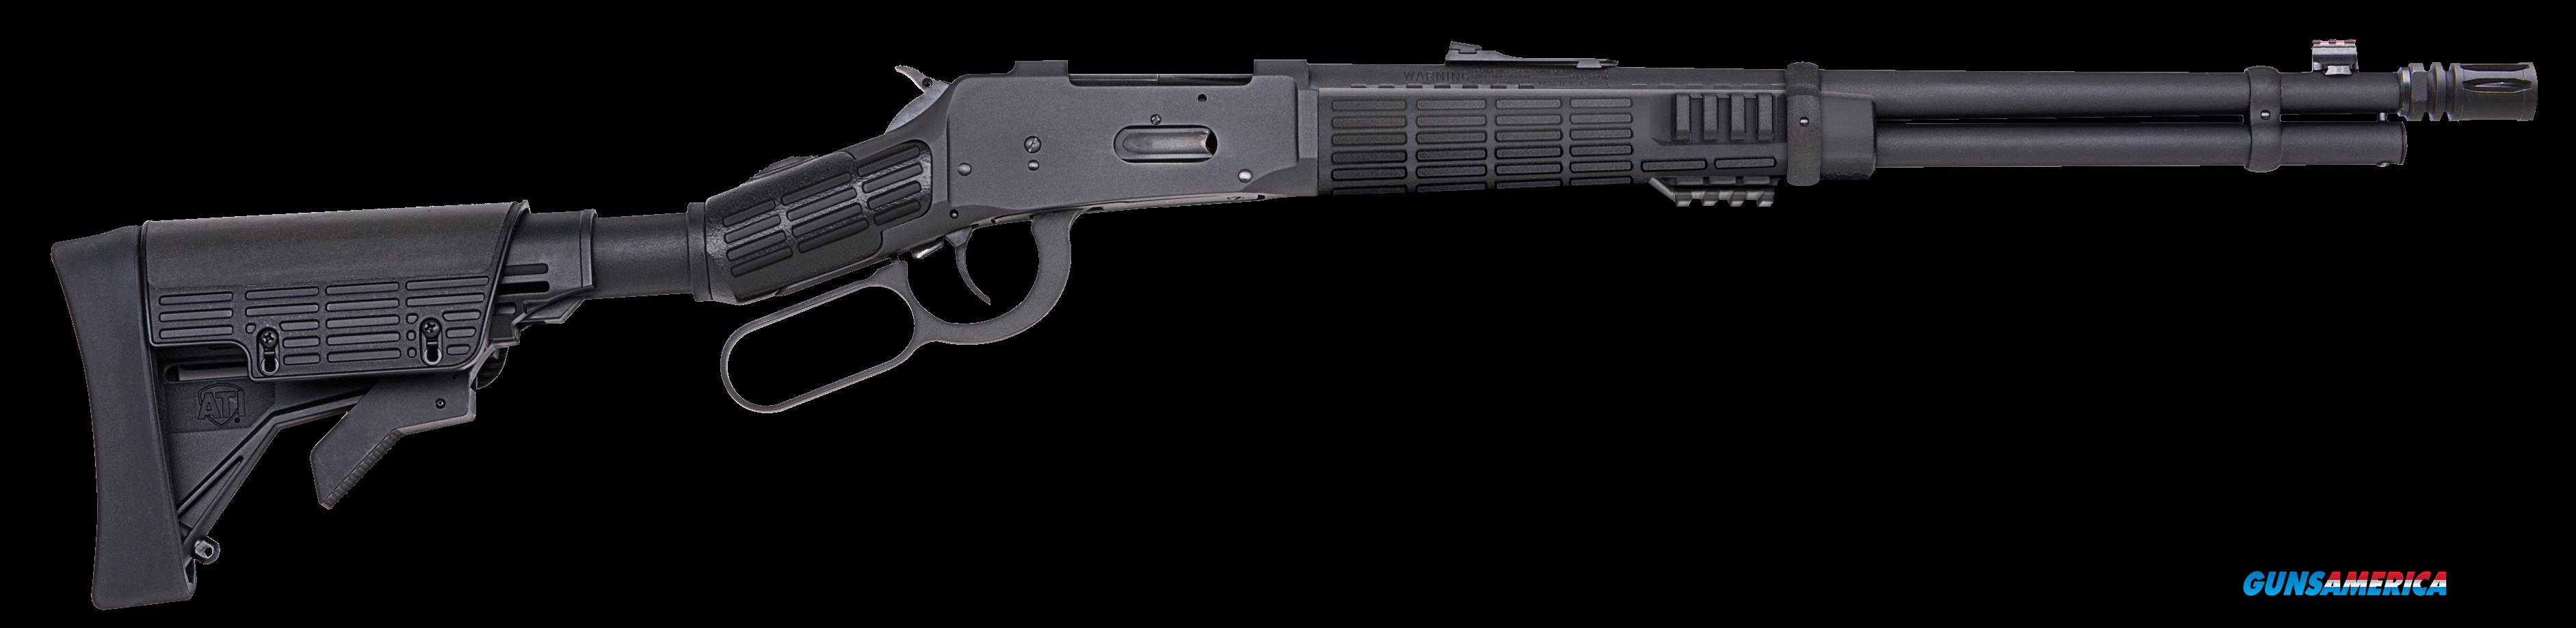 "Mossberg 41026 464 SPX Lever 30-30 Win 16.3"" 6+1 6-Position Black Stk Black  Guns > Rifles > Mossberg Rifles > Lever Action"